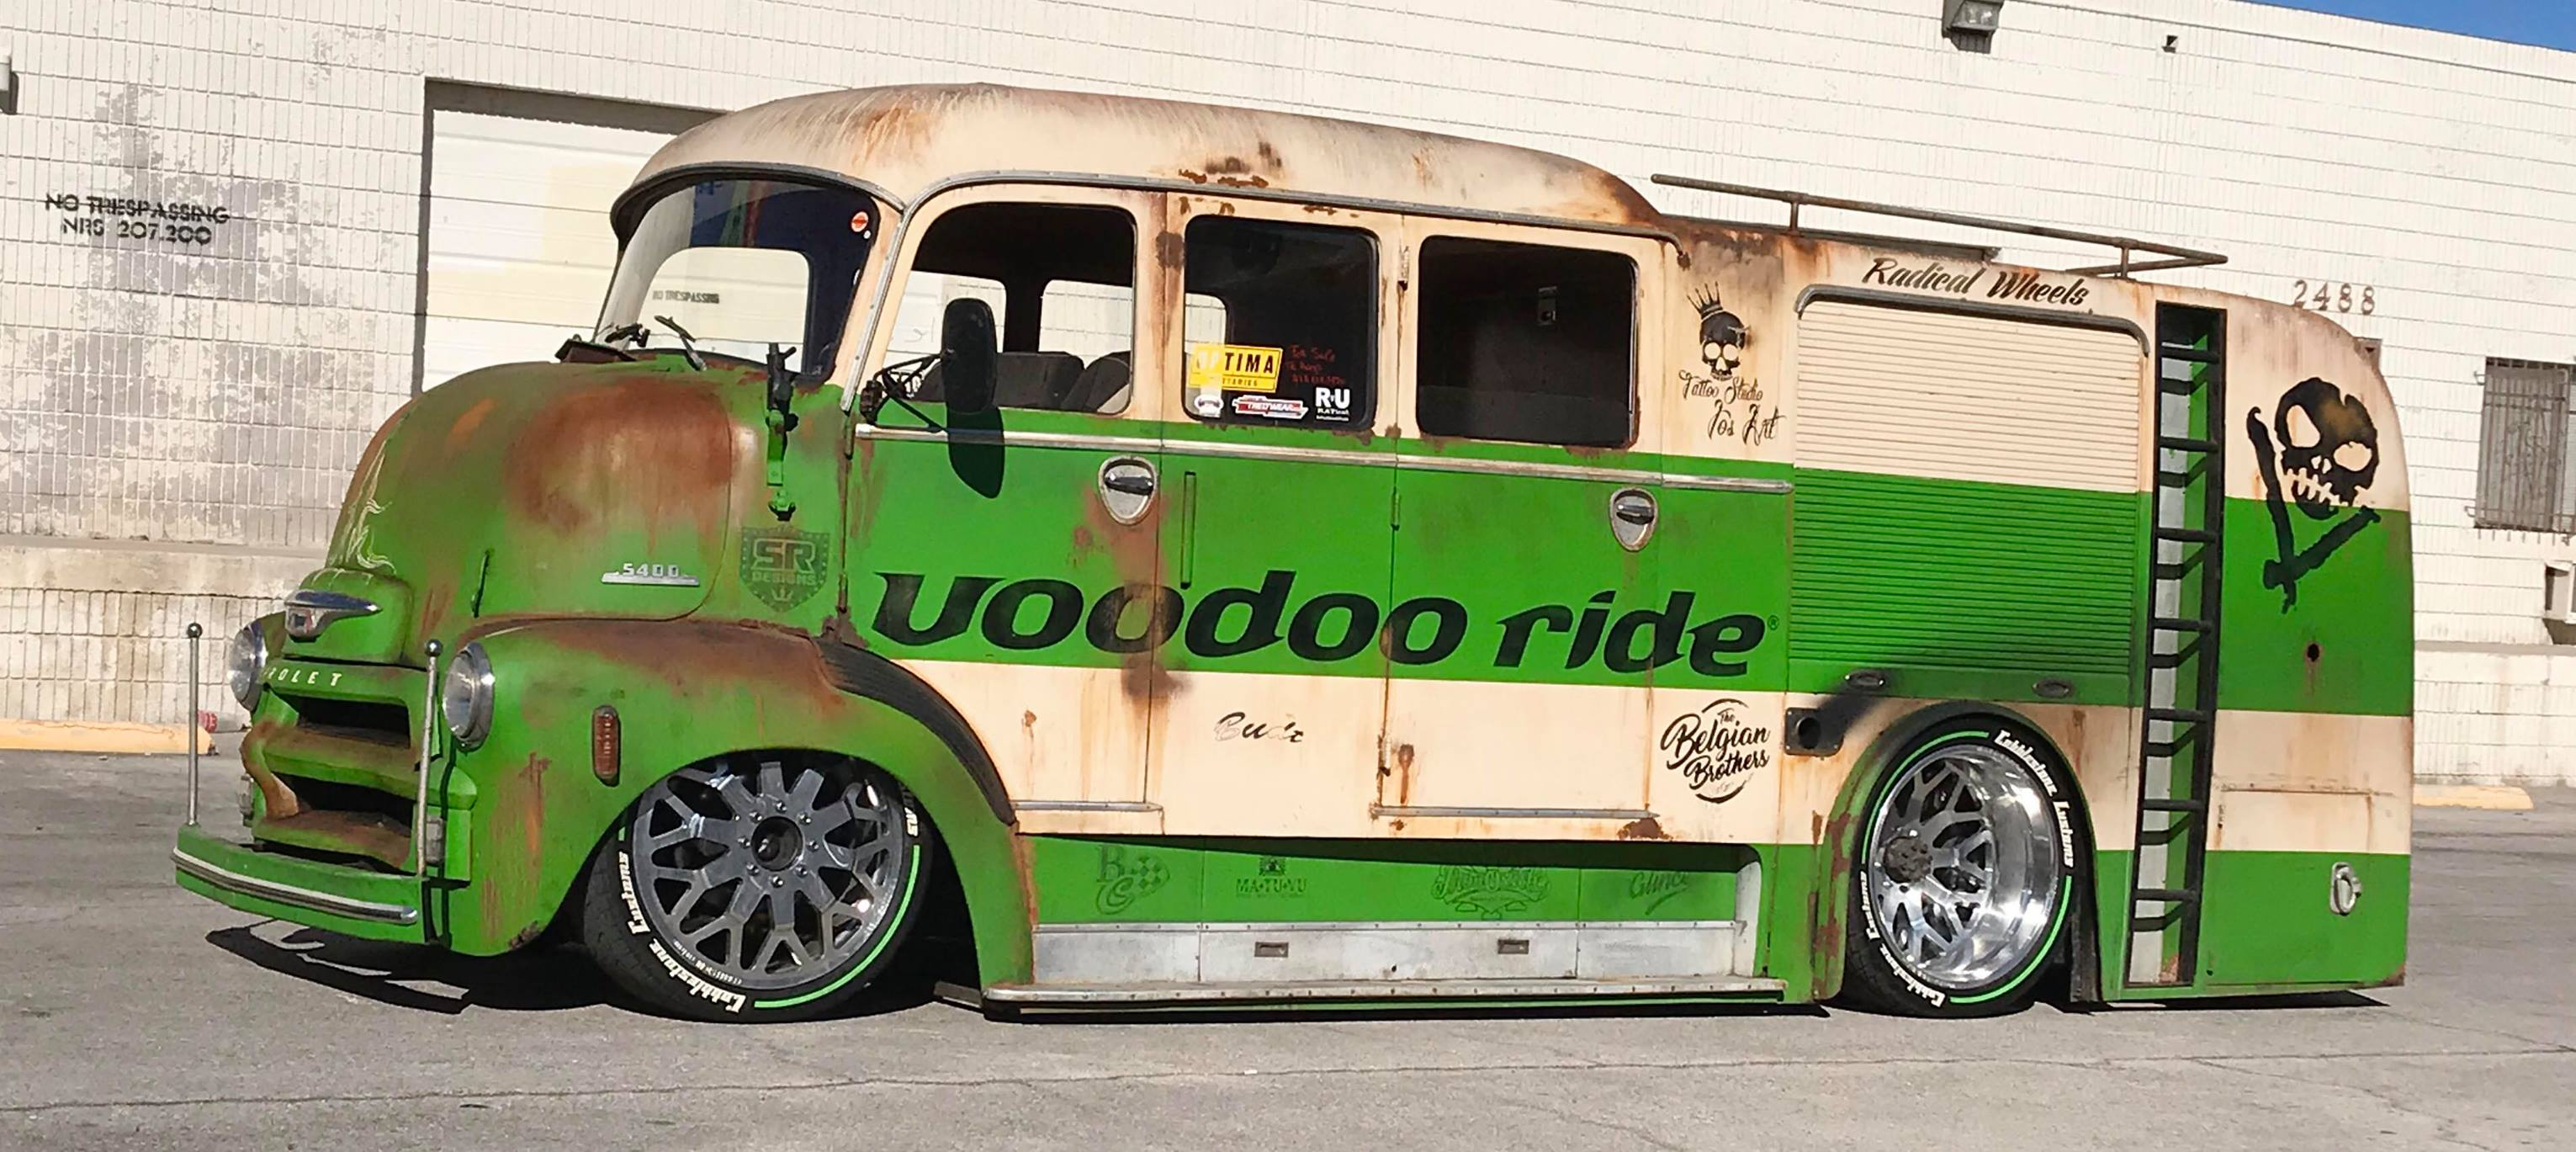 From Civil Servant To Slammed Super-Rig: This 1955 Chevrolet COE Gets Worked Over